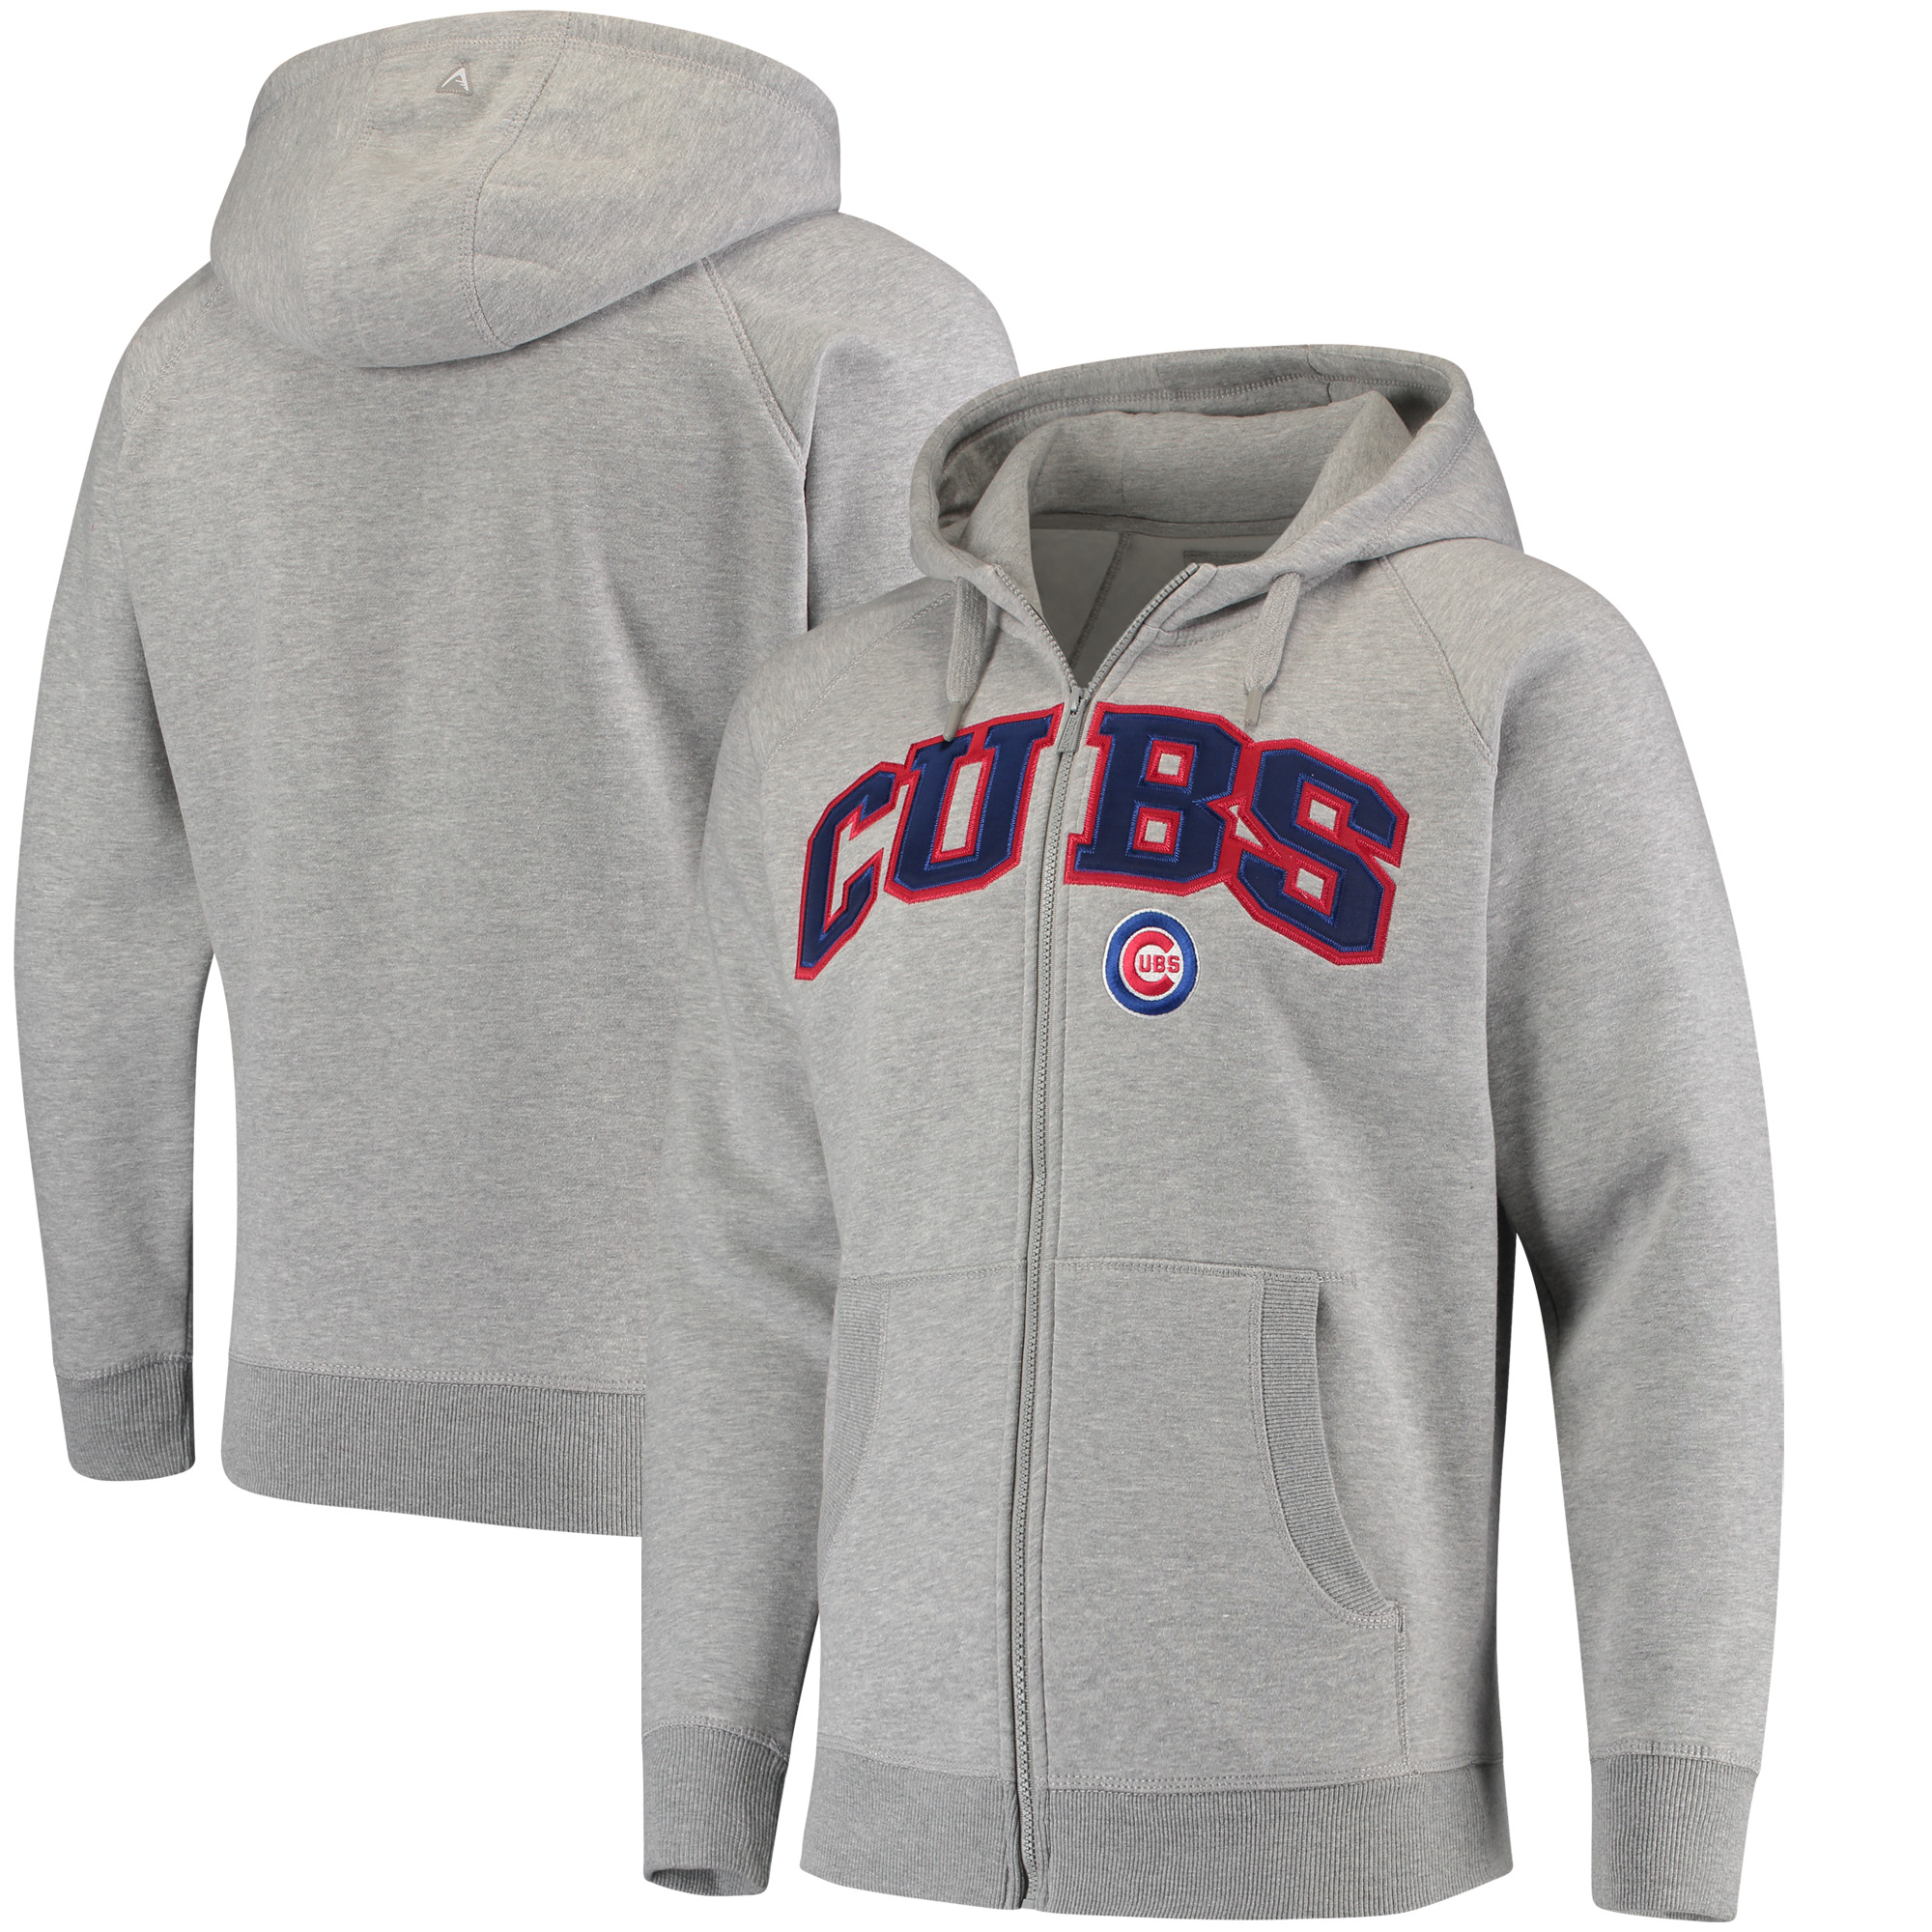 Chicago Cubs Antigua Team Victory Full-Zip Hoodie - Heathered Gray